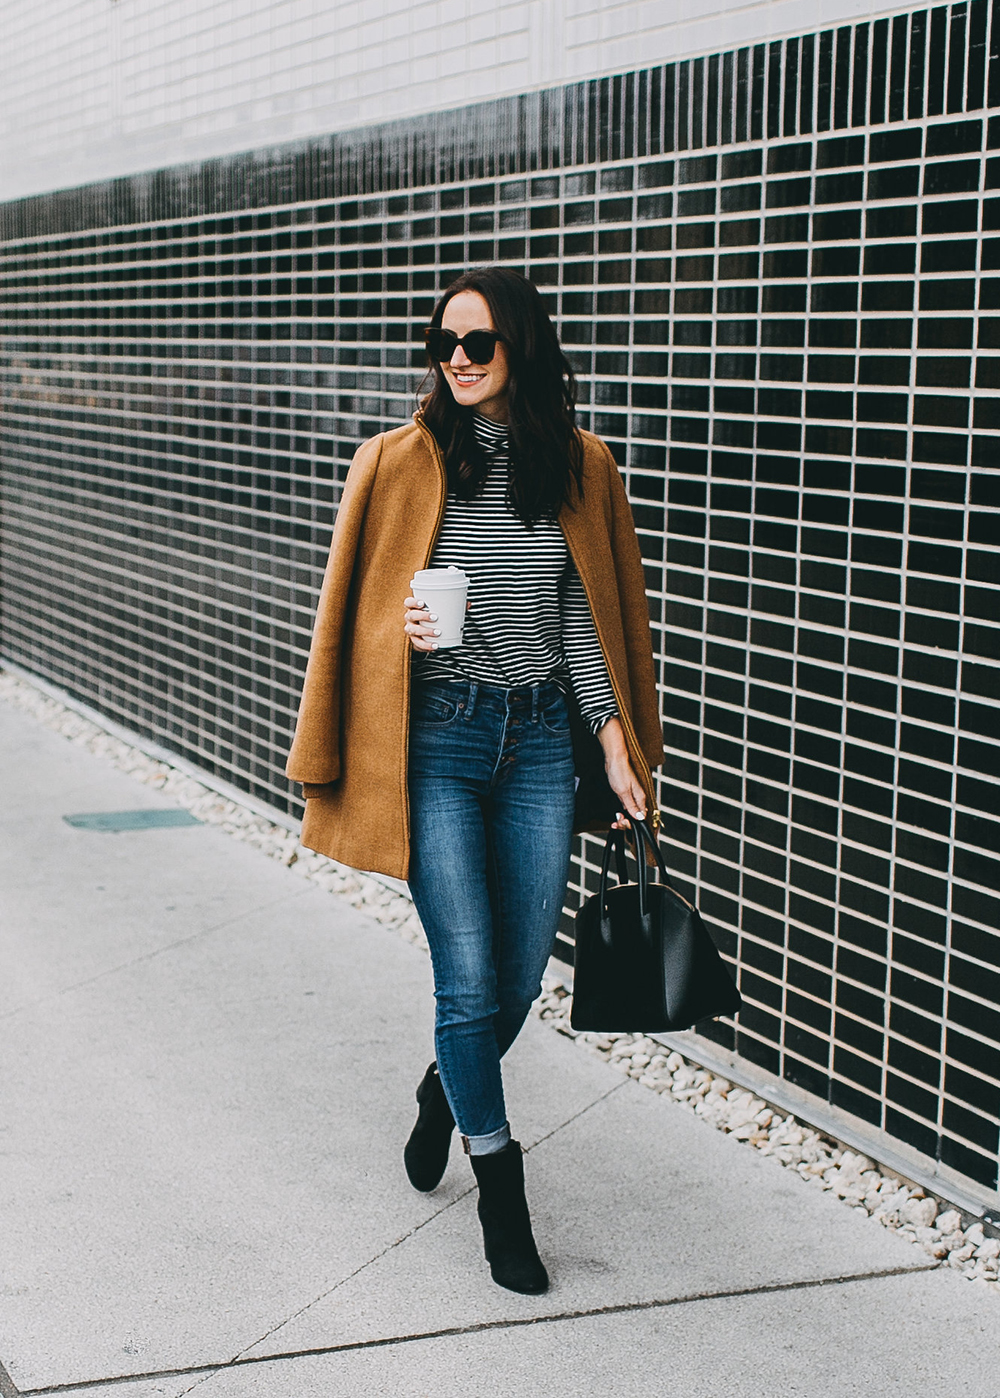 livvyland-blog-olivia-watson-austin-texas-fashion-blogger-j-crew-camel-winter-coat-striped-turtleneck-mid-calf-ankle-booties-7